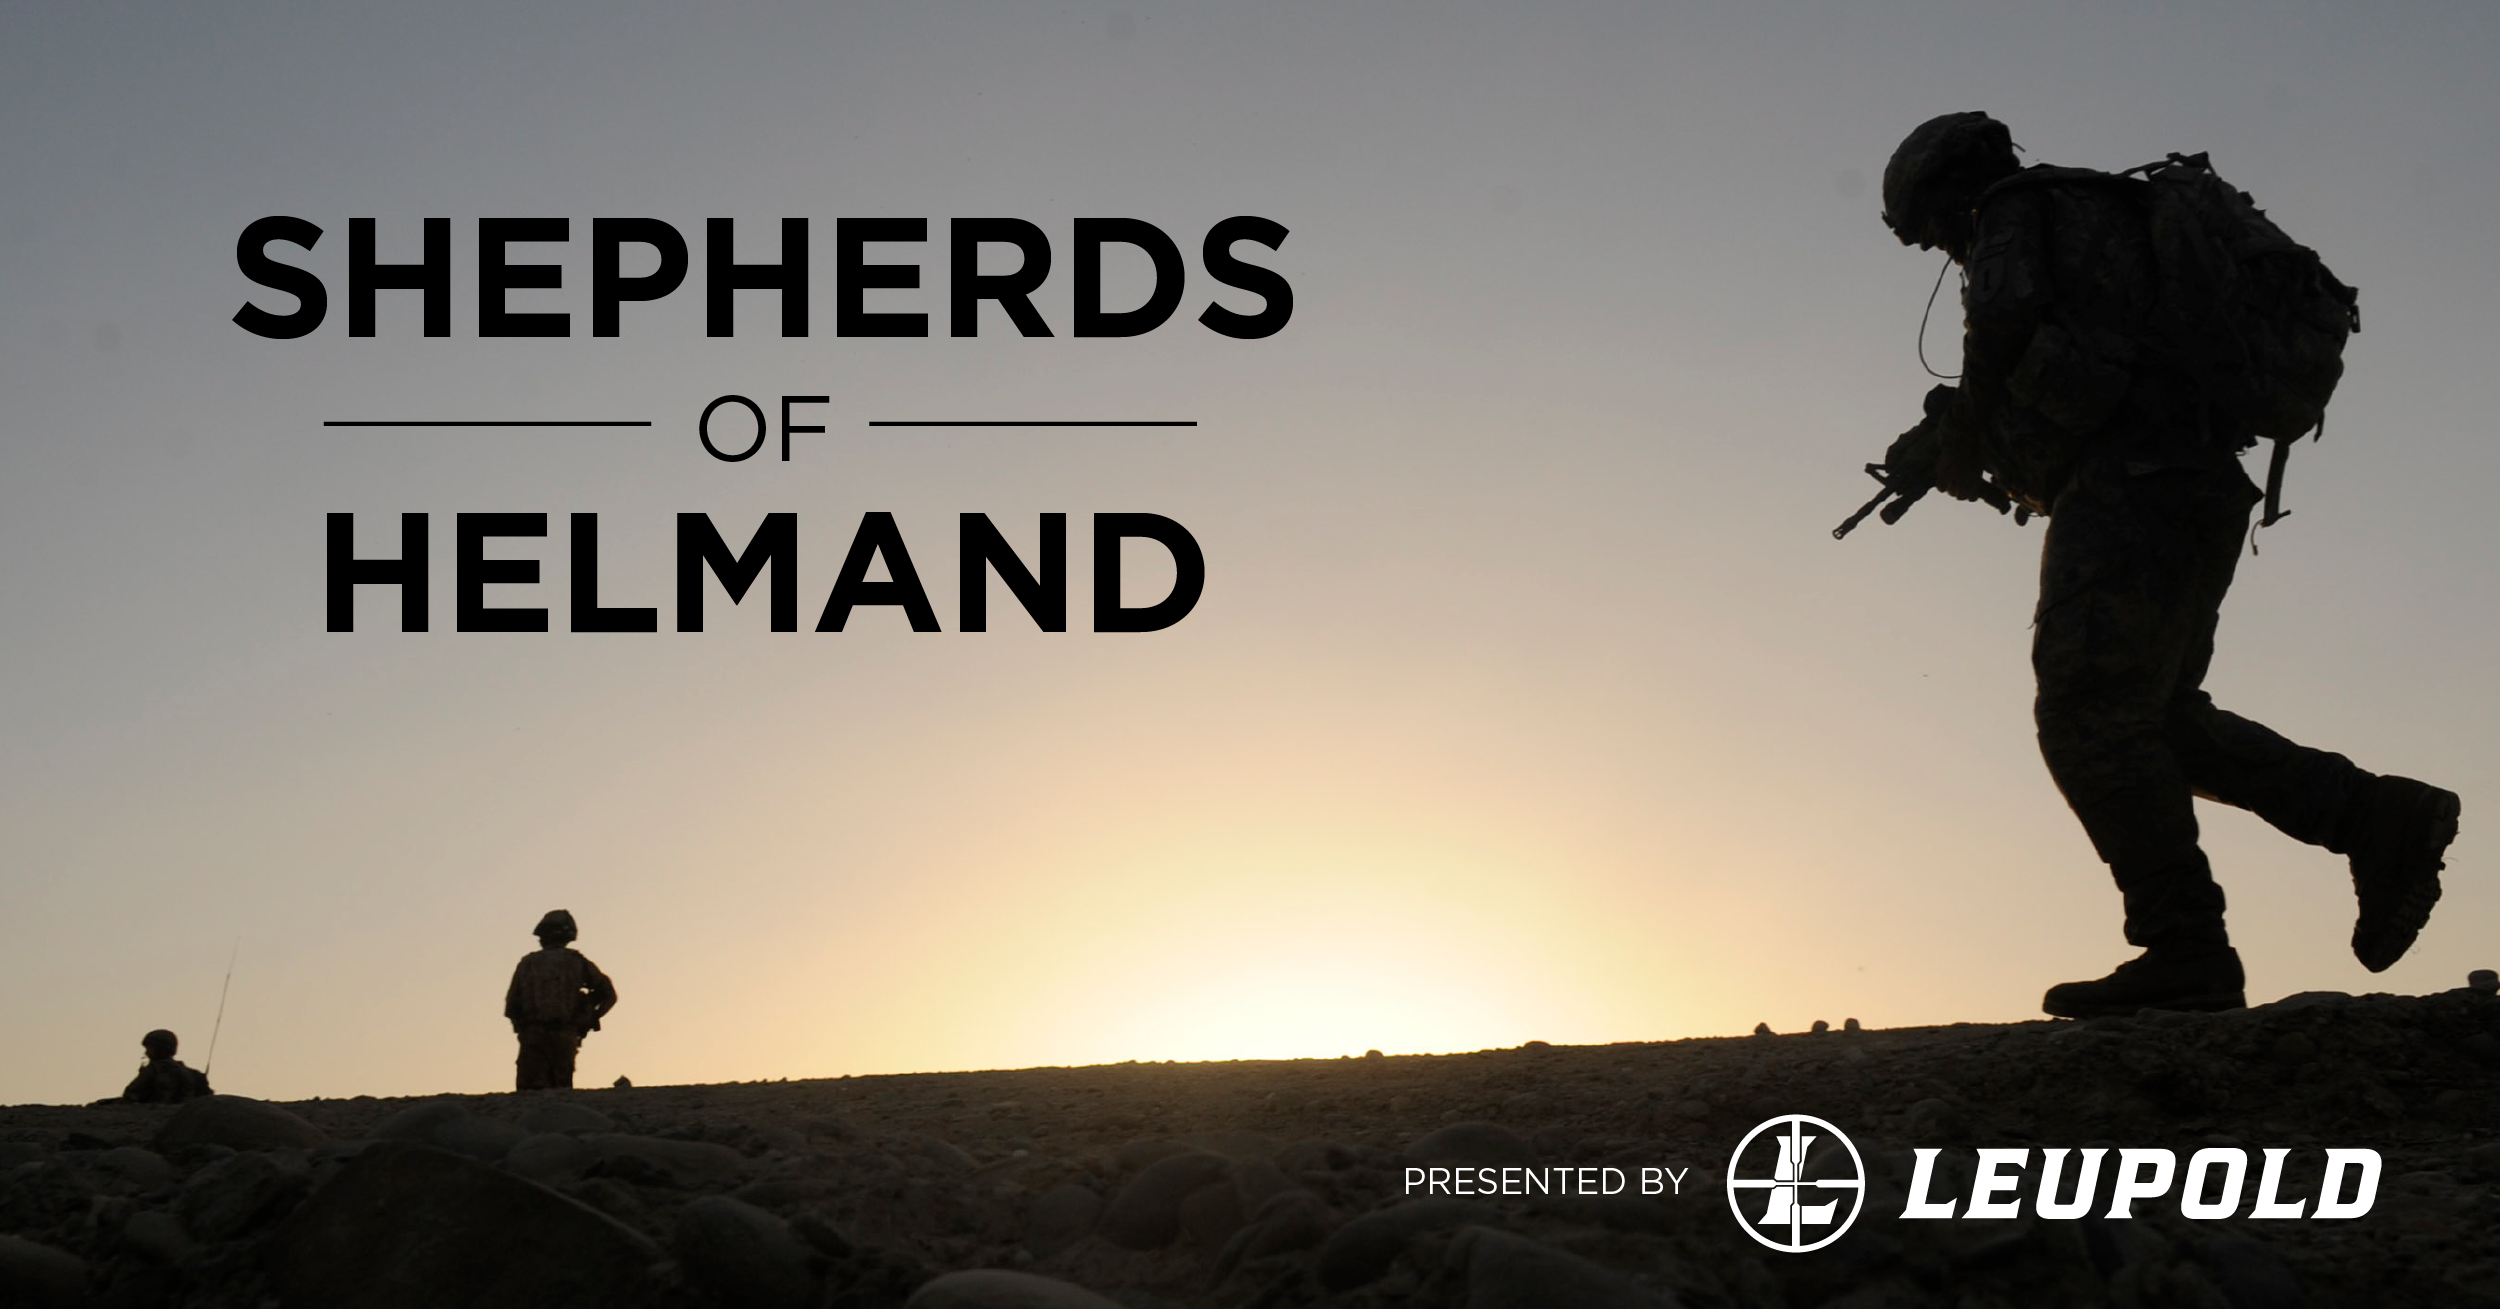 Leupold Invites You to Watch 'Shepherds of Helmand'